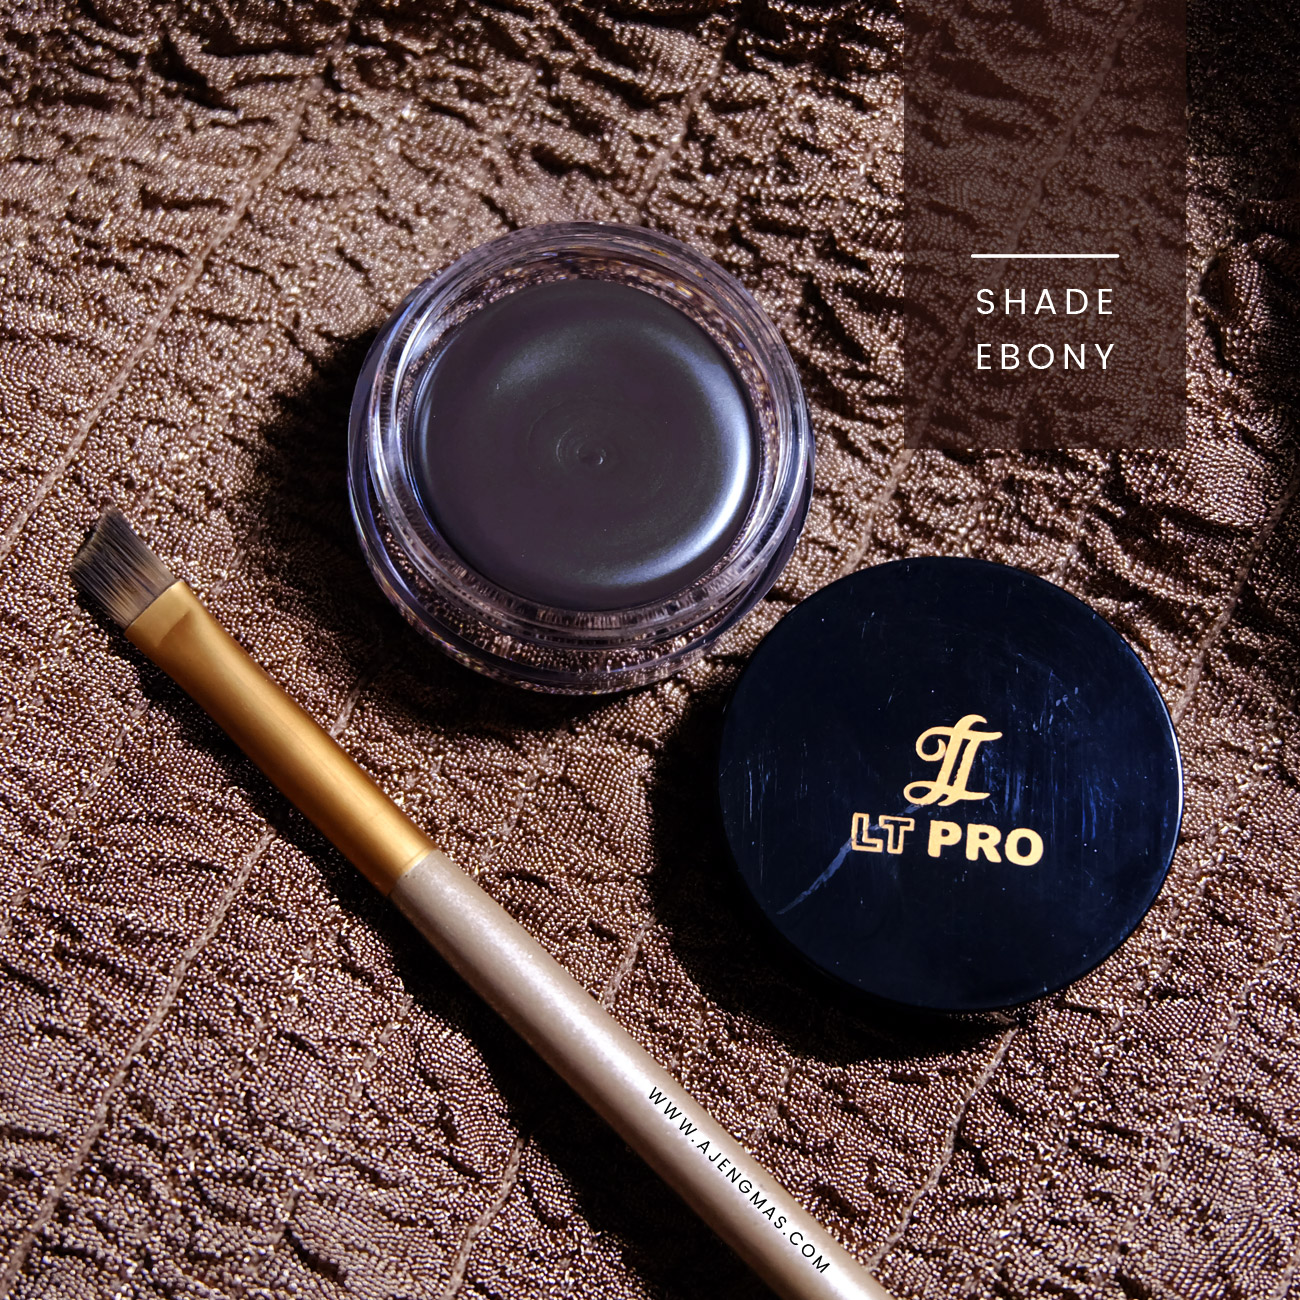 lt-pro-dual-lasting-eyebrow-cream-pomade-review